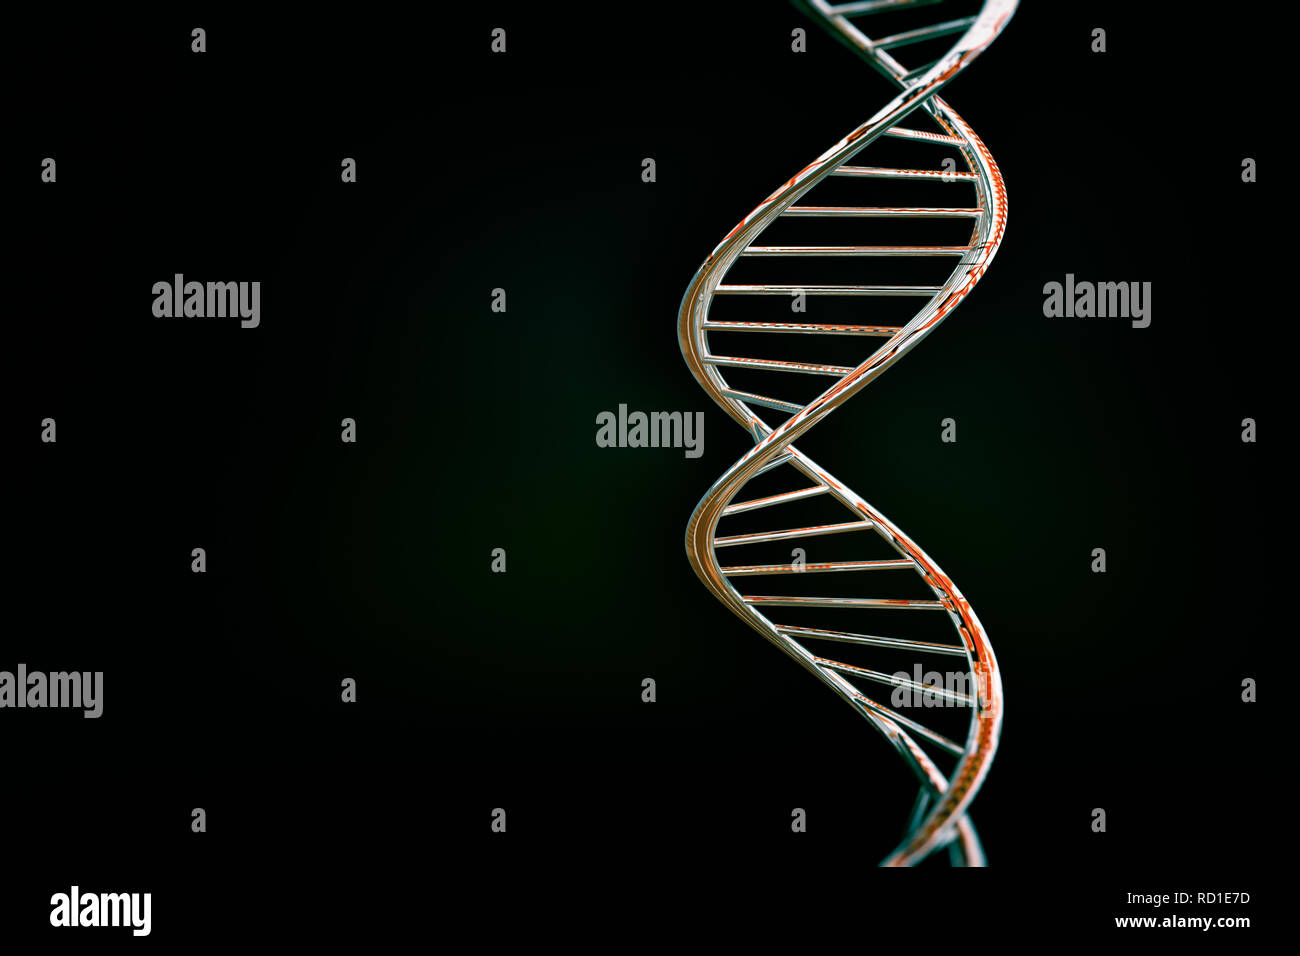 DNA double helix, red glossy material, dark background - Stock Image